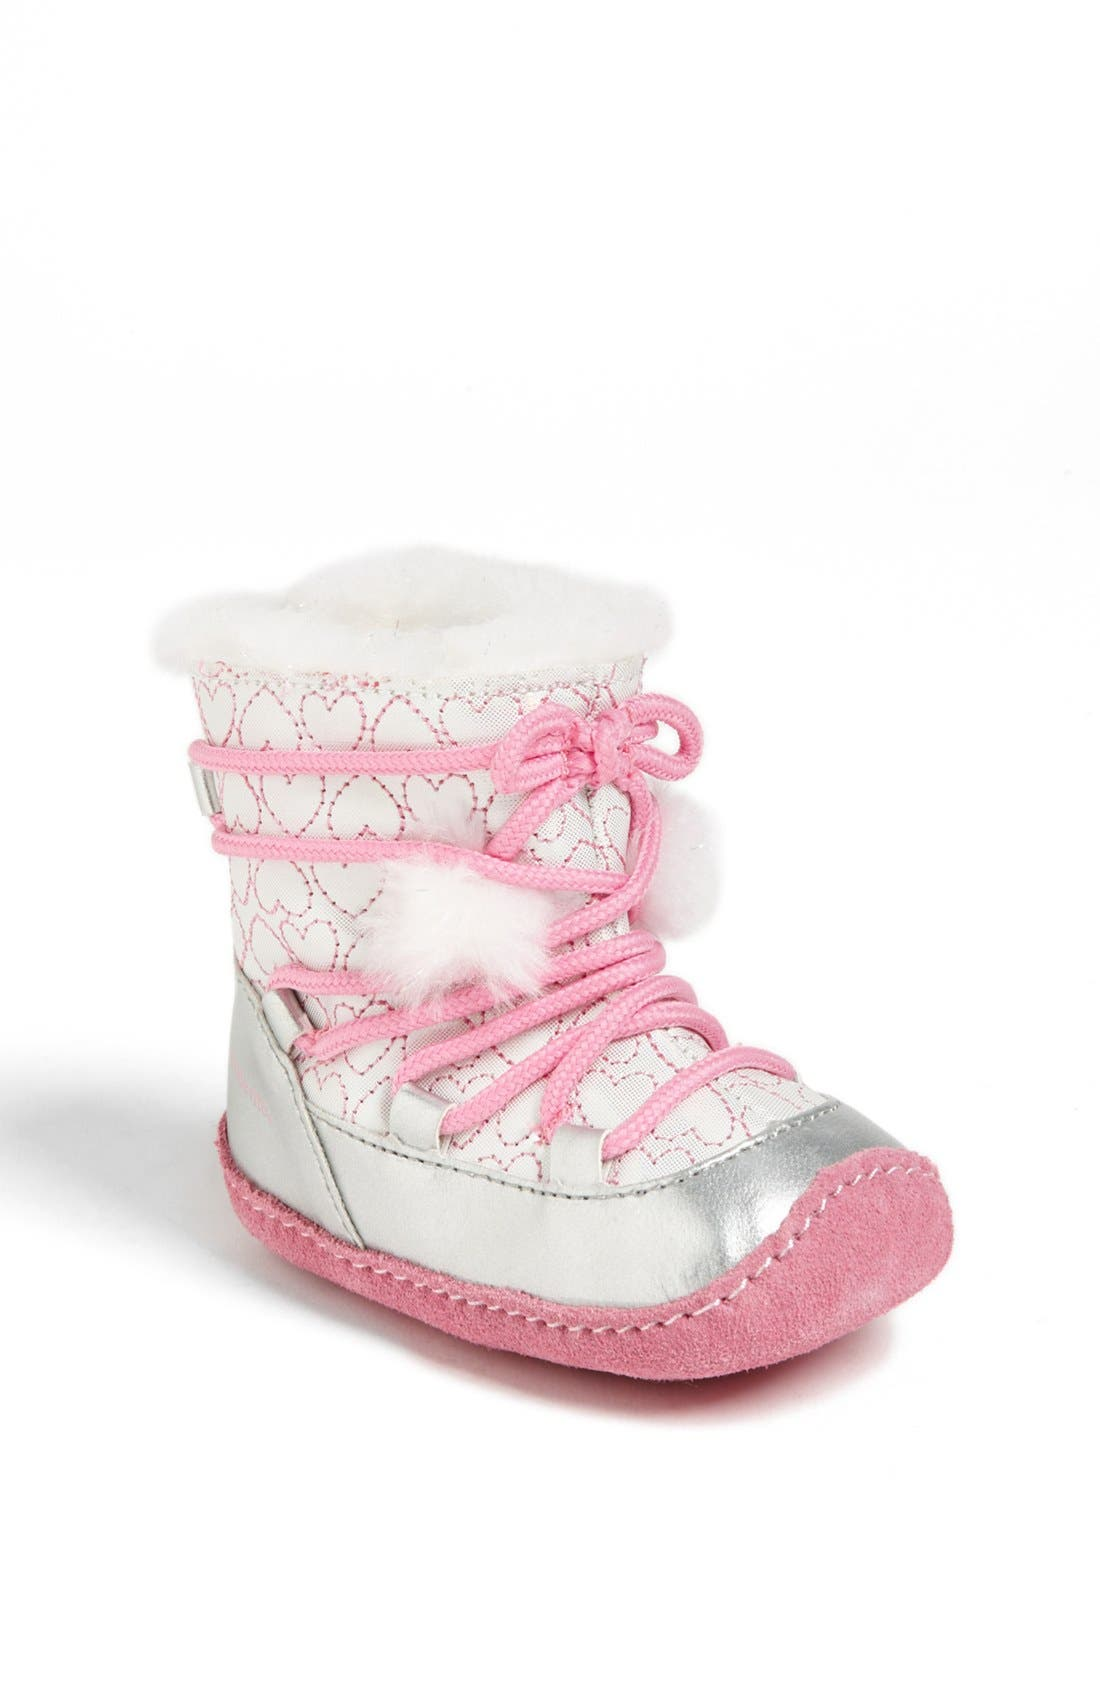 Main Image - Stride Rite 'Crawl - Snowdrop' Boot (Baby Girls)